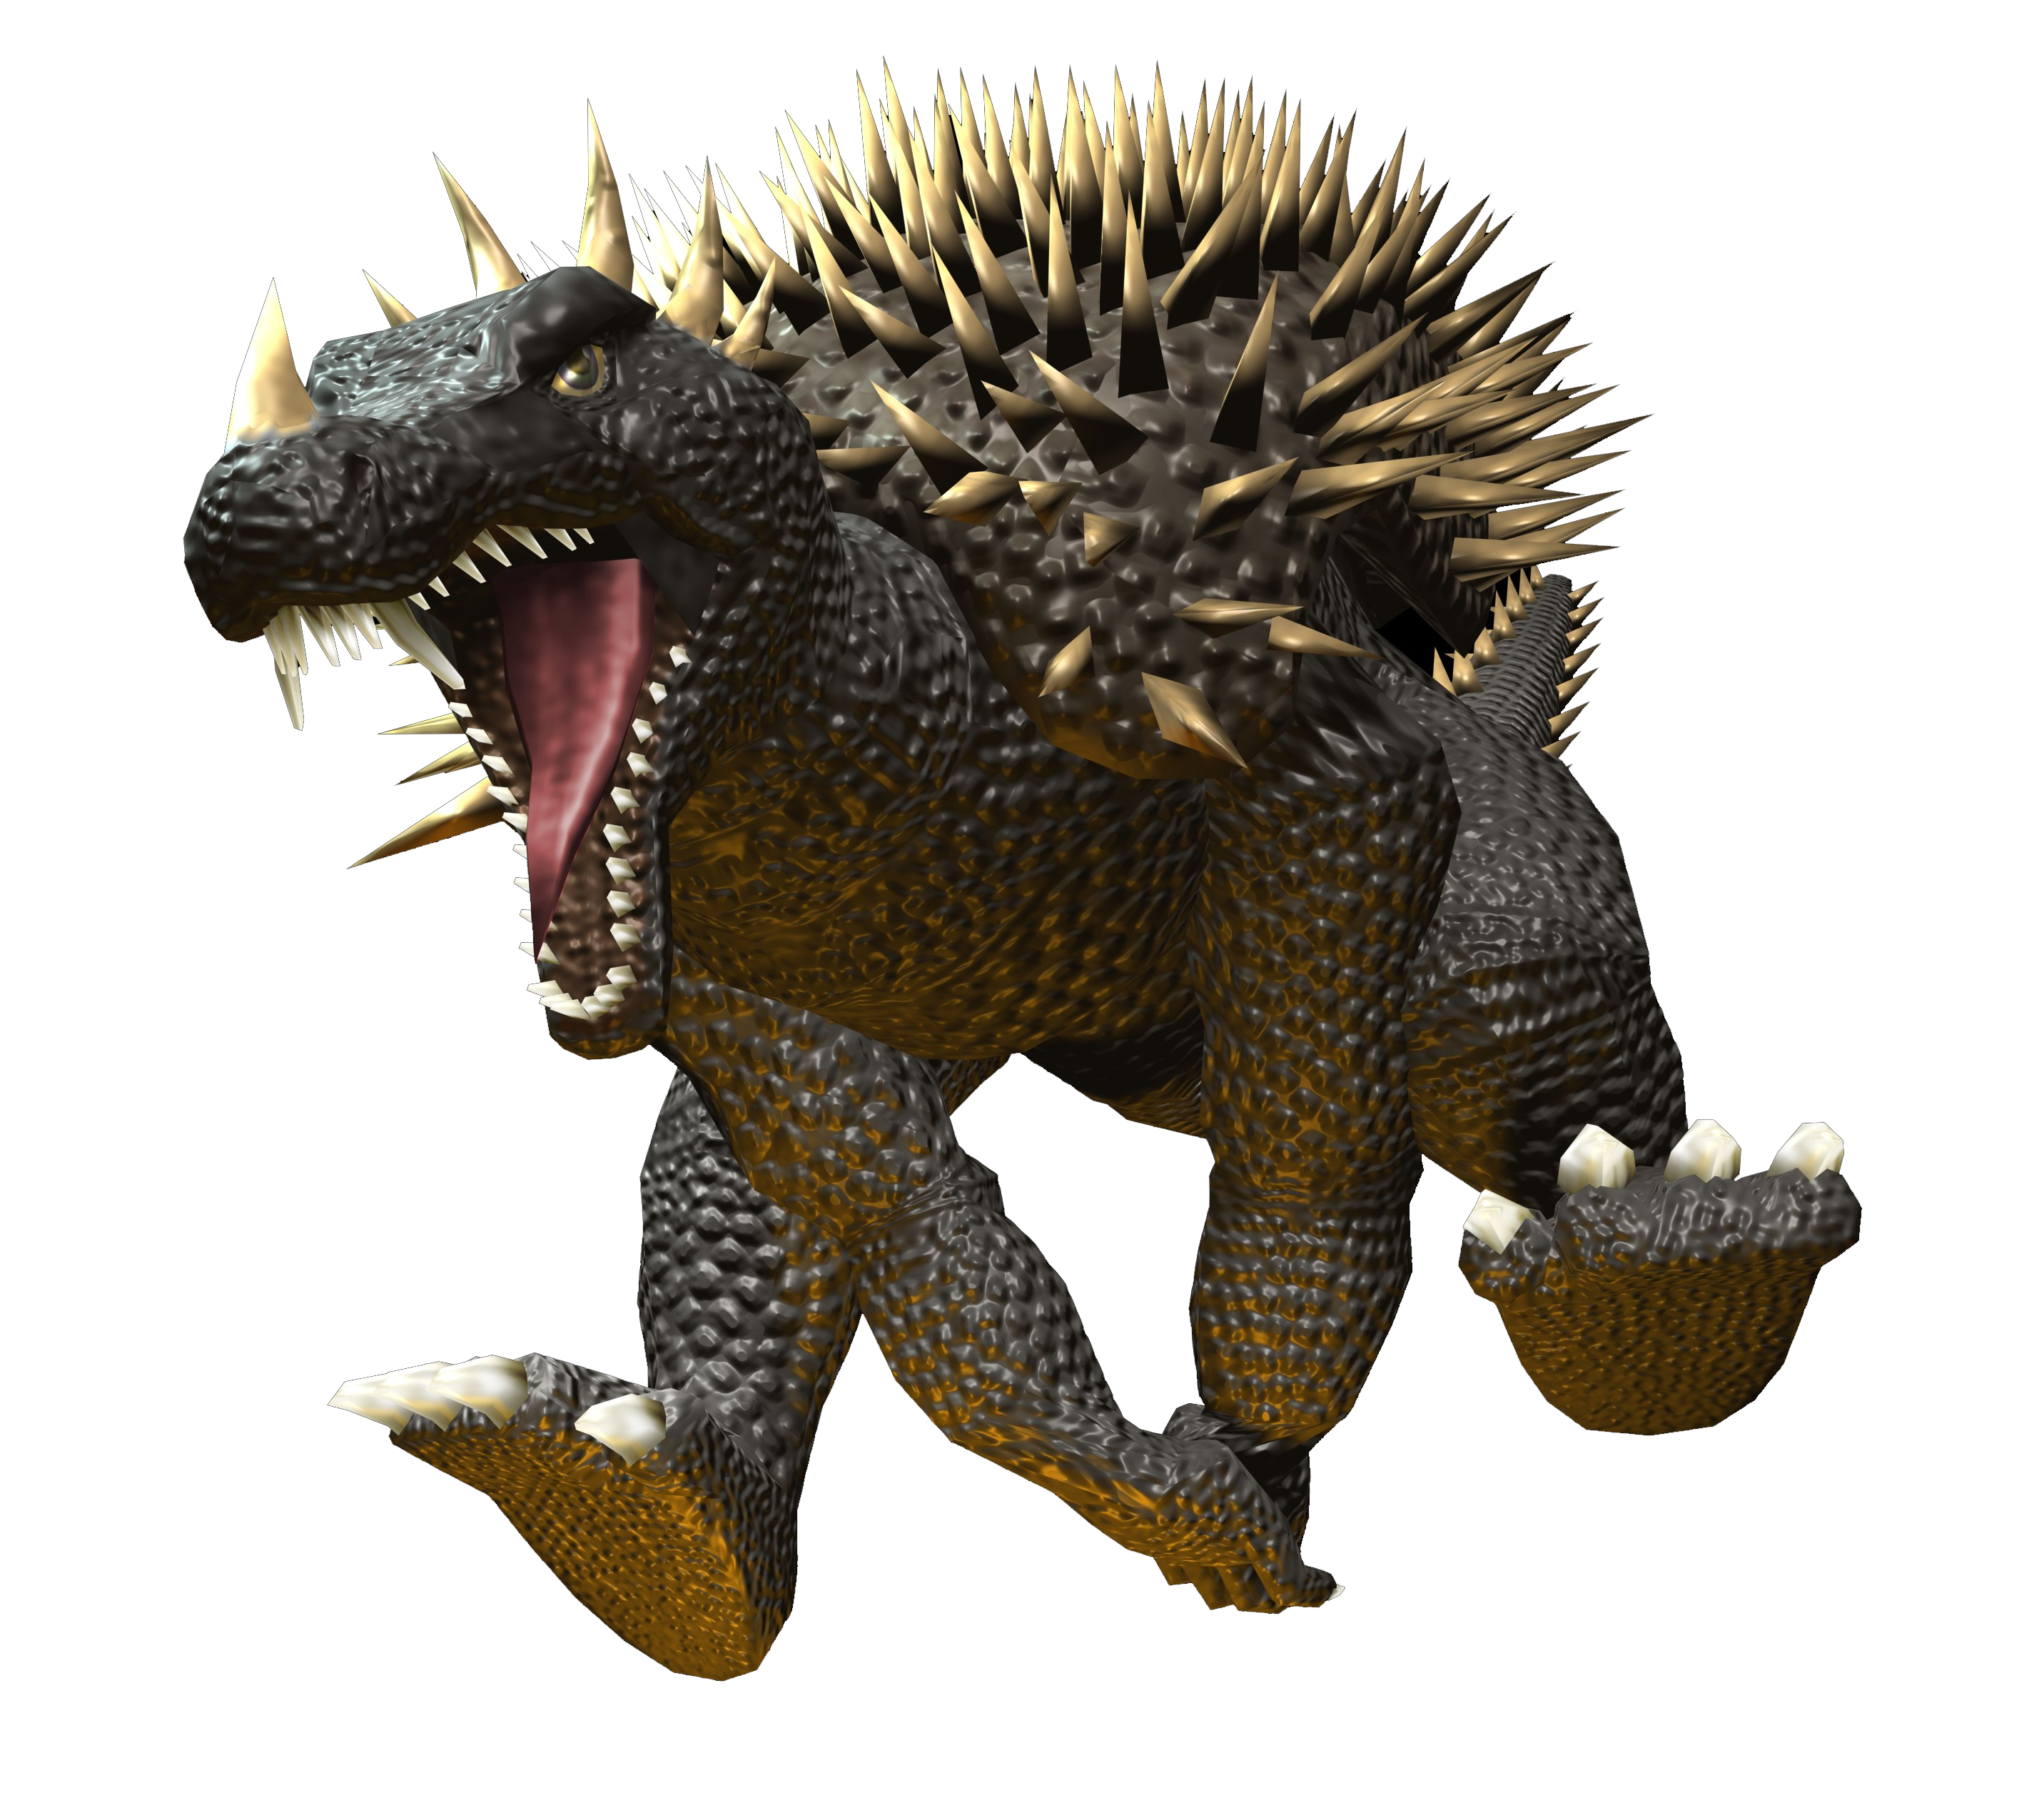 Anguirus toy clipart images gallery for download MyReal 2836x2550